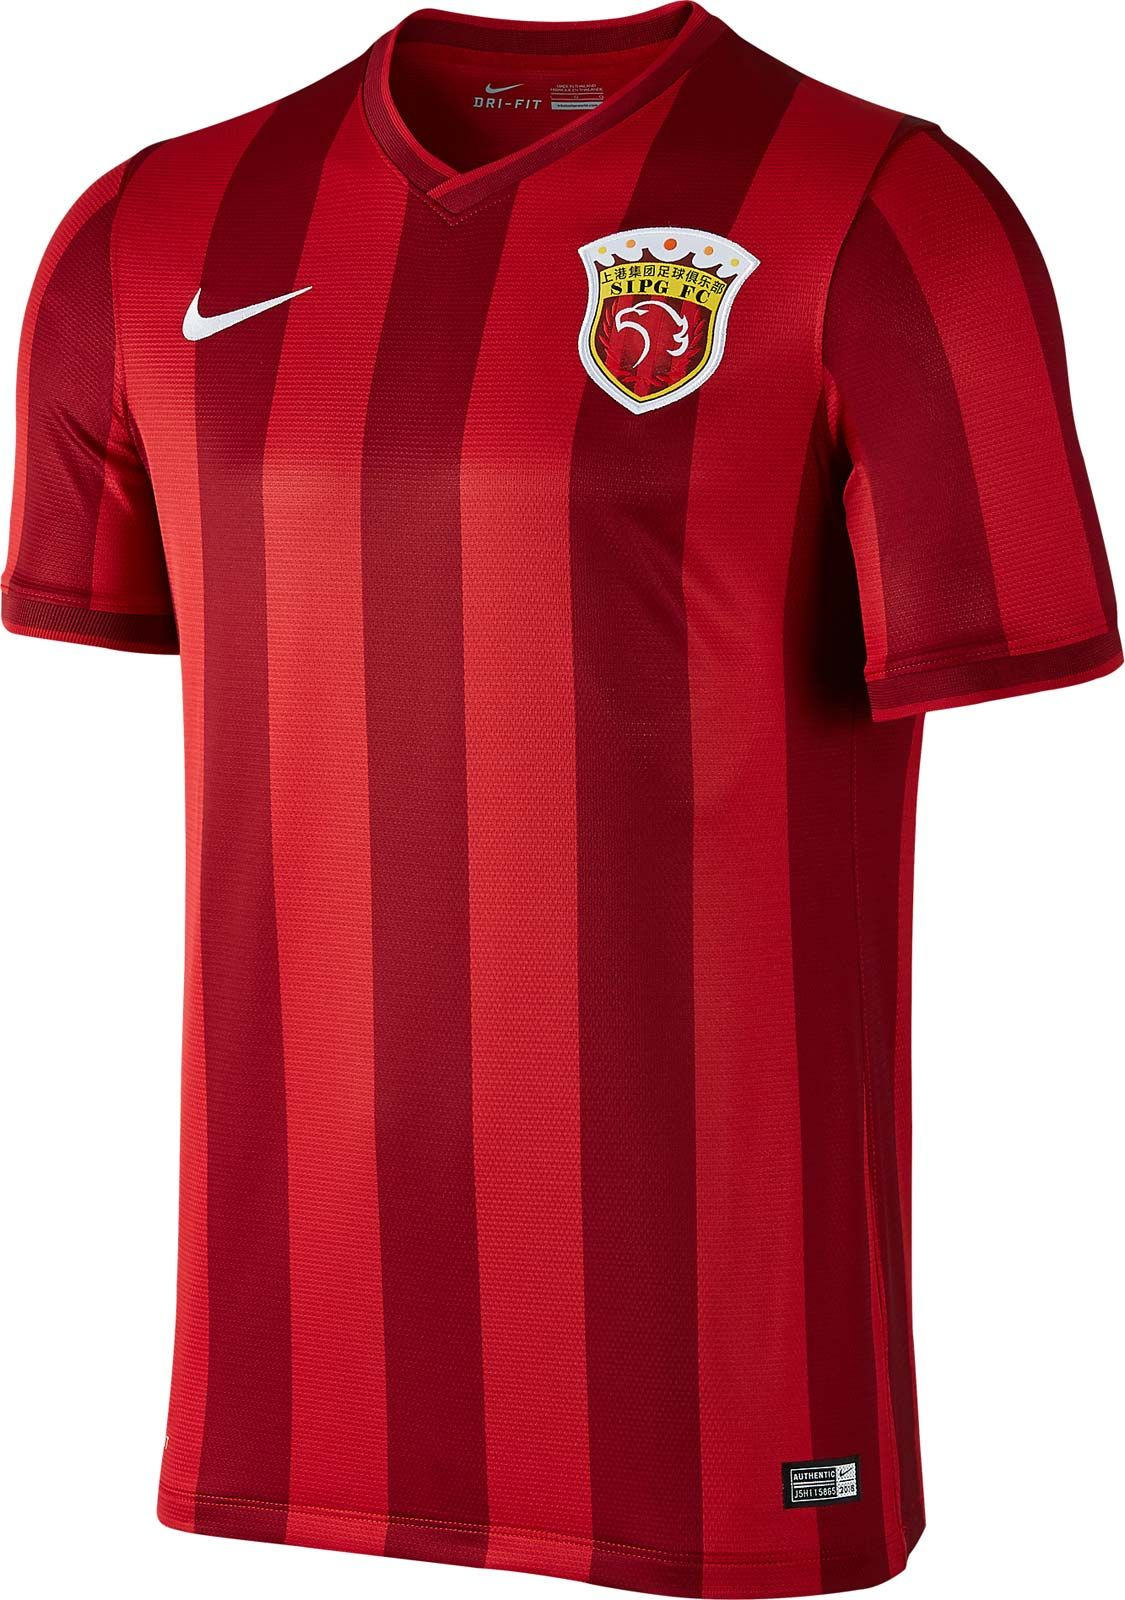 232e3dc69 The new Shanghai SIPG 2016 kit boasts a strong and modern design in red.